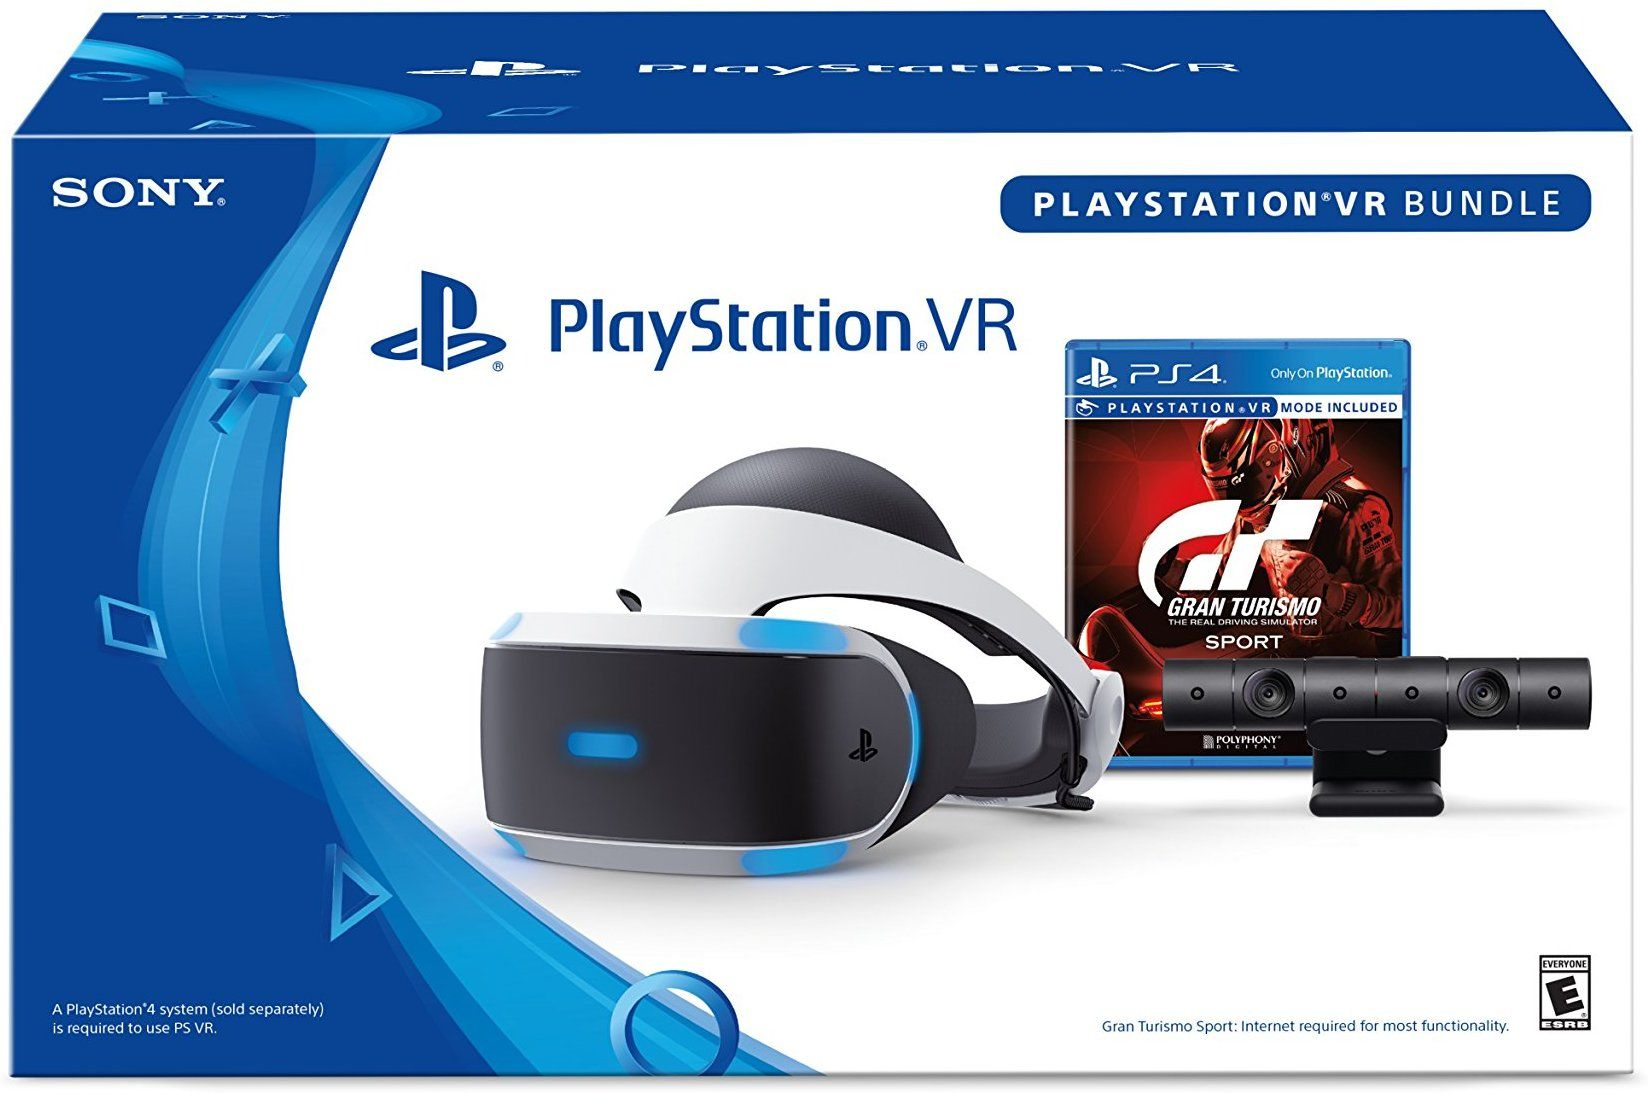 Playstation Vr Gt Sport Bundle Is Up For Preorders Playstation4 Emio Controller Elite Blue Colour Ps4 Sony Videogames Gamer Games Gaming